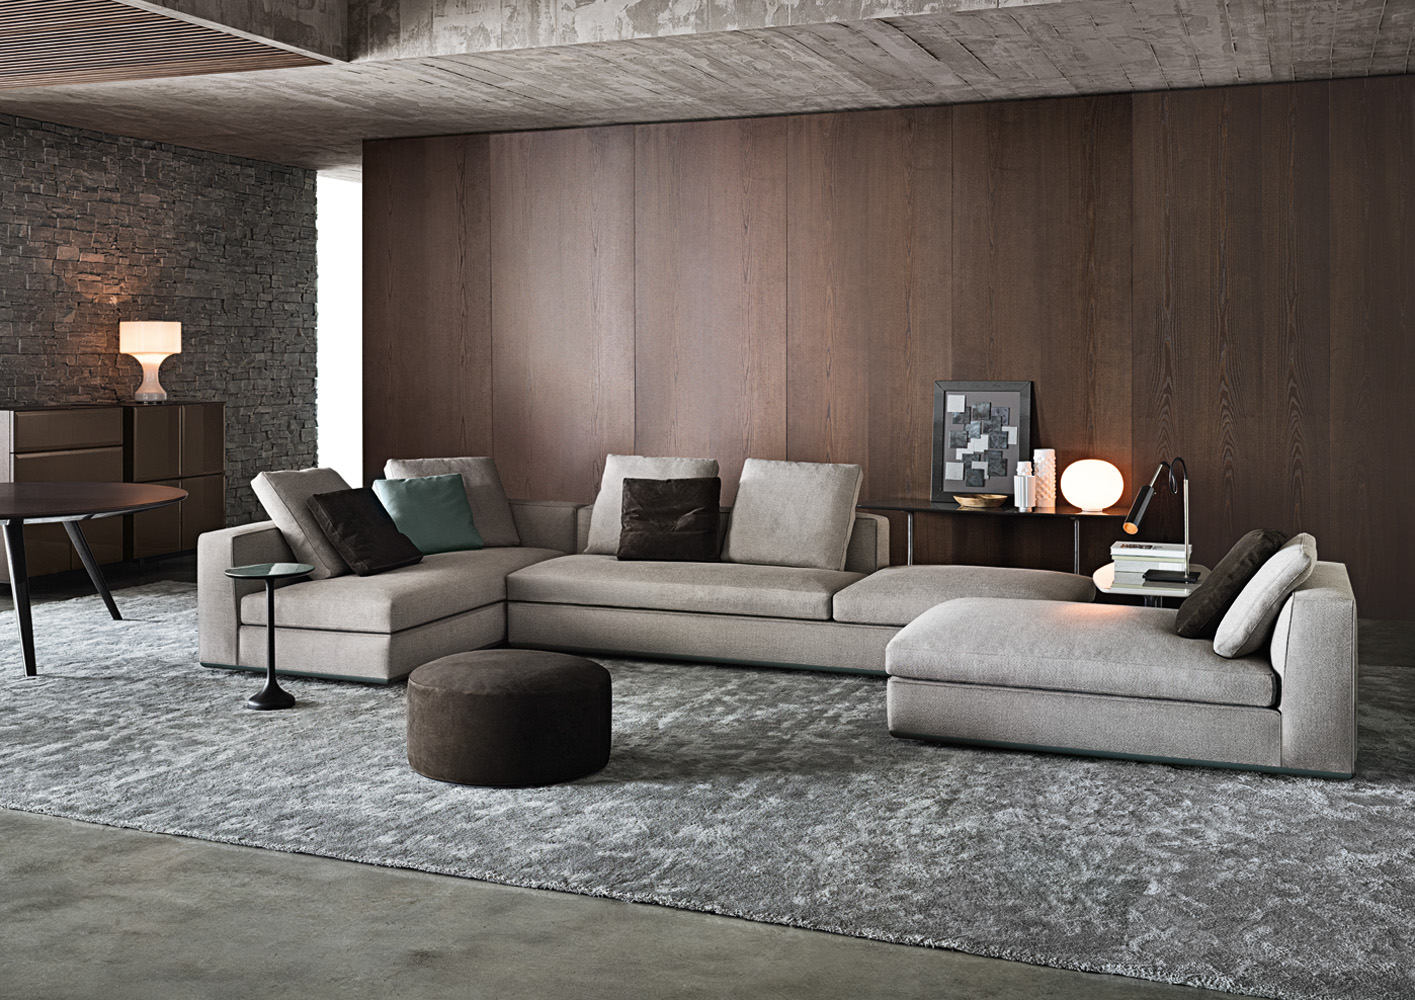 Coffee Table For Sectional Couch With Chaise